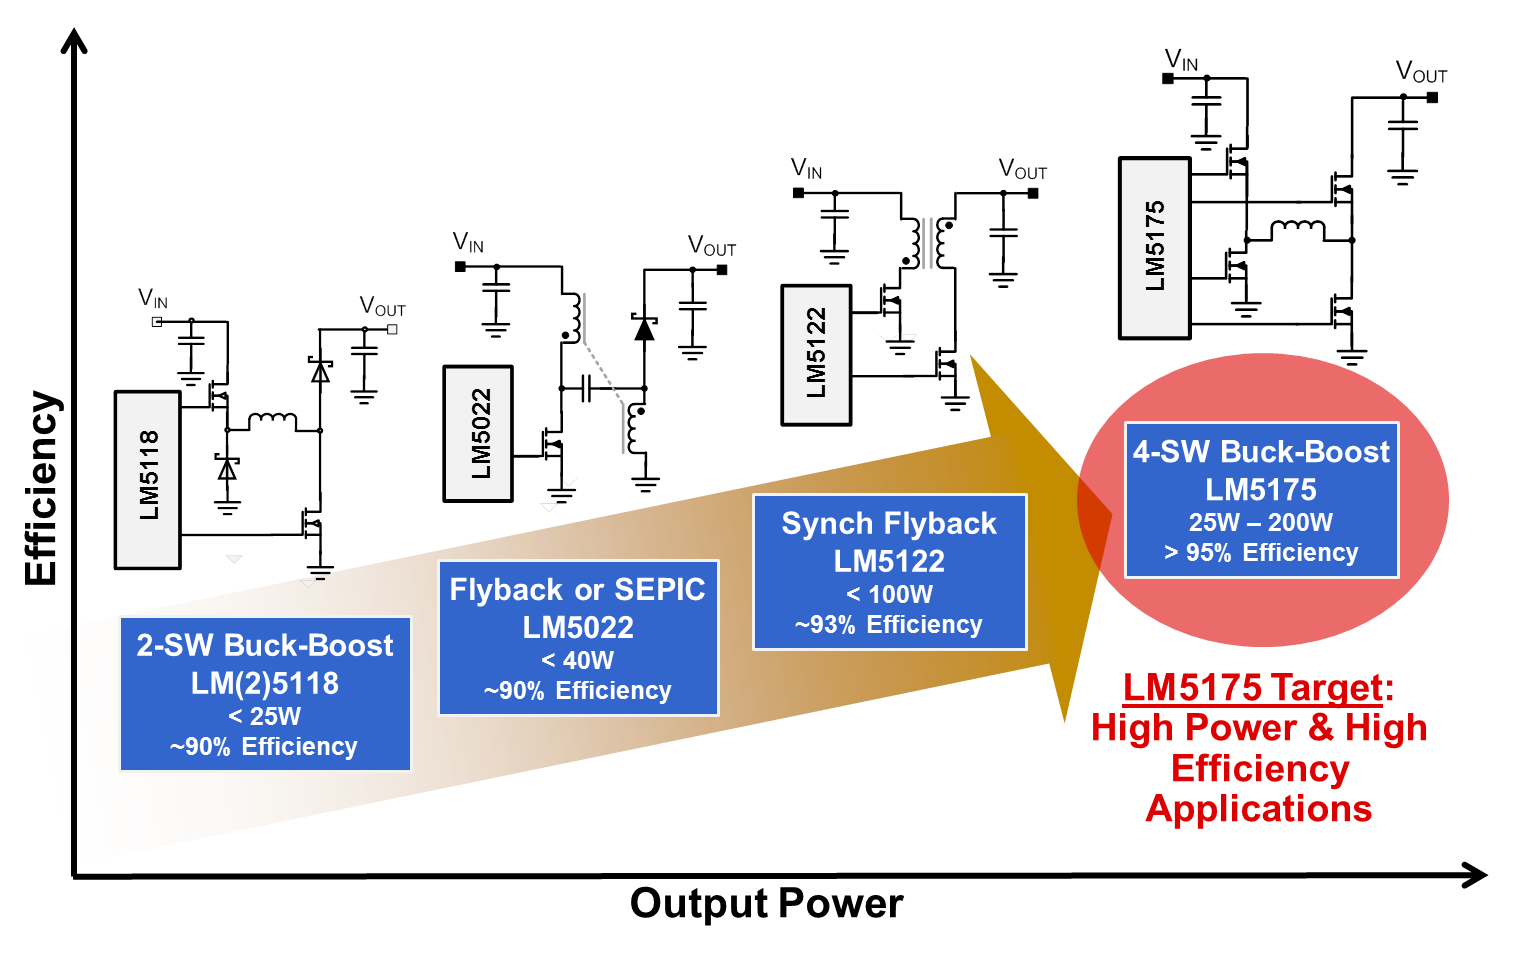 Four-switch buck-boost controller delivers high power and efficiency ...